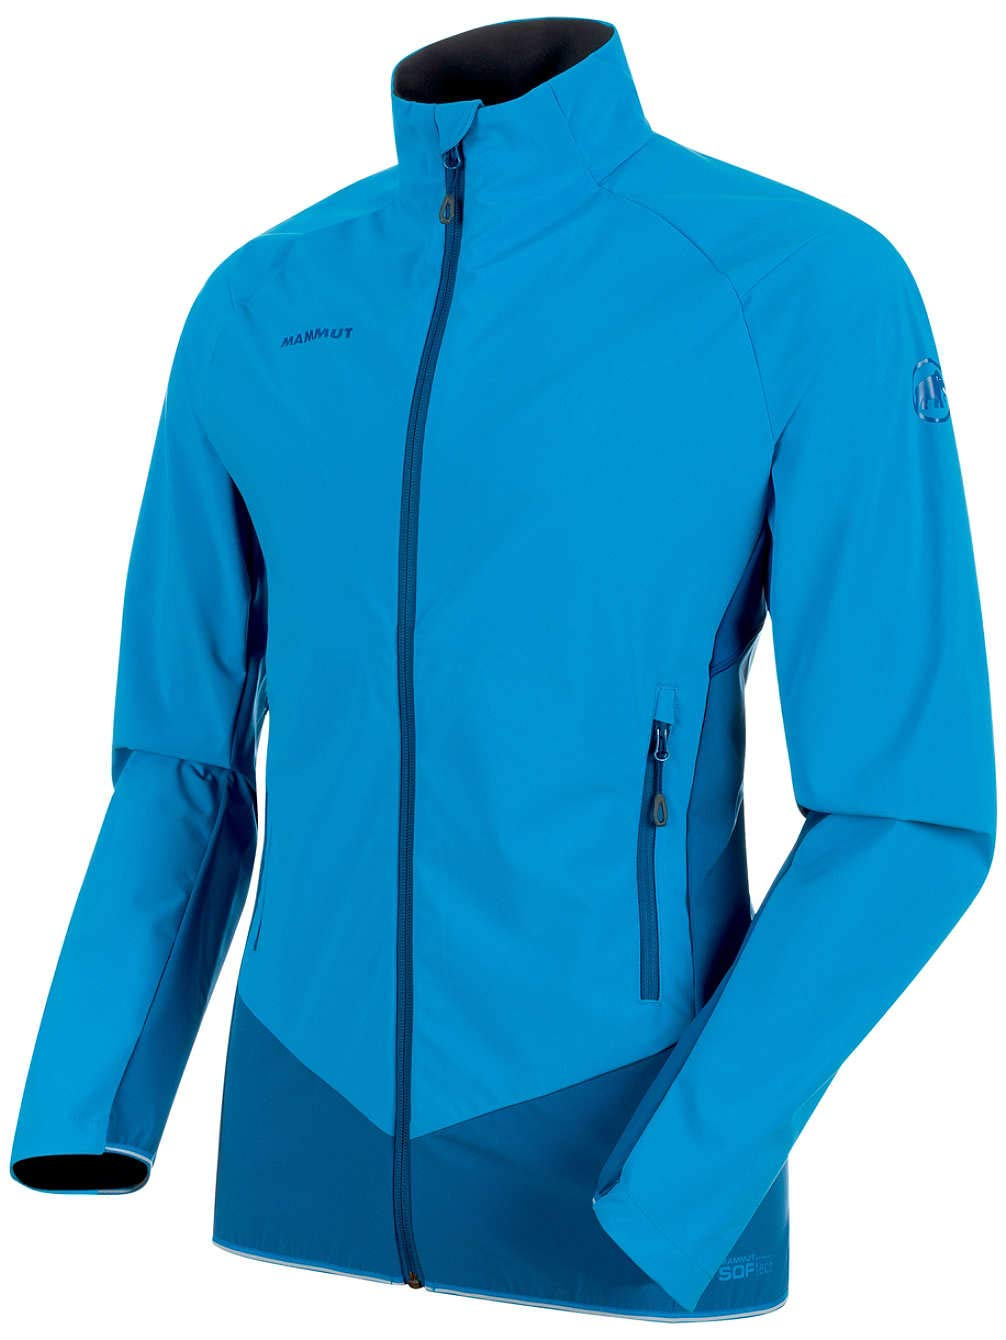 Mammut aenergy Veste So – , Homme 1011-18551